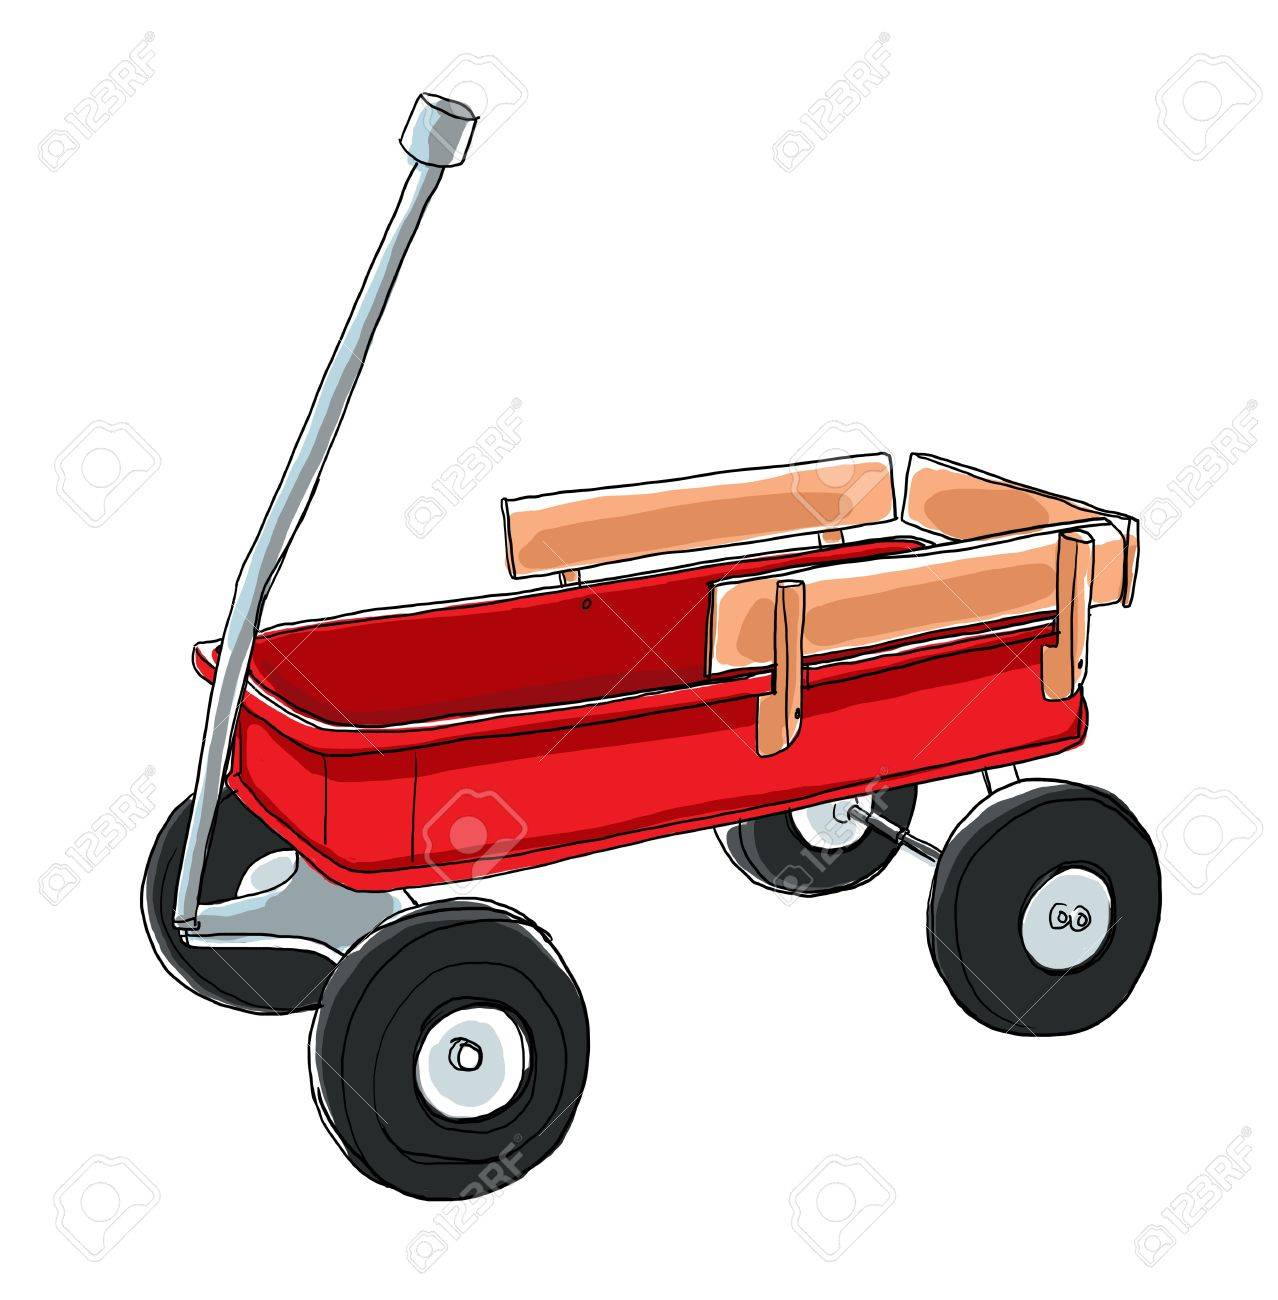 red wagon vintage toy - 19832535